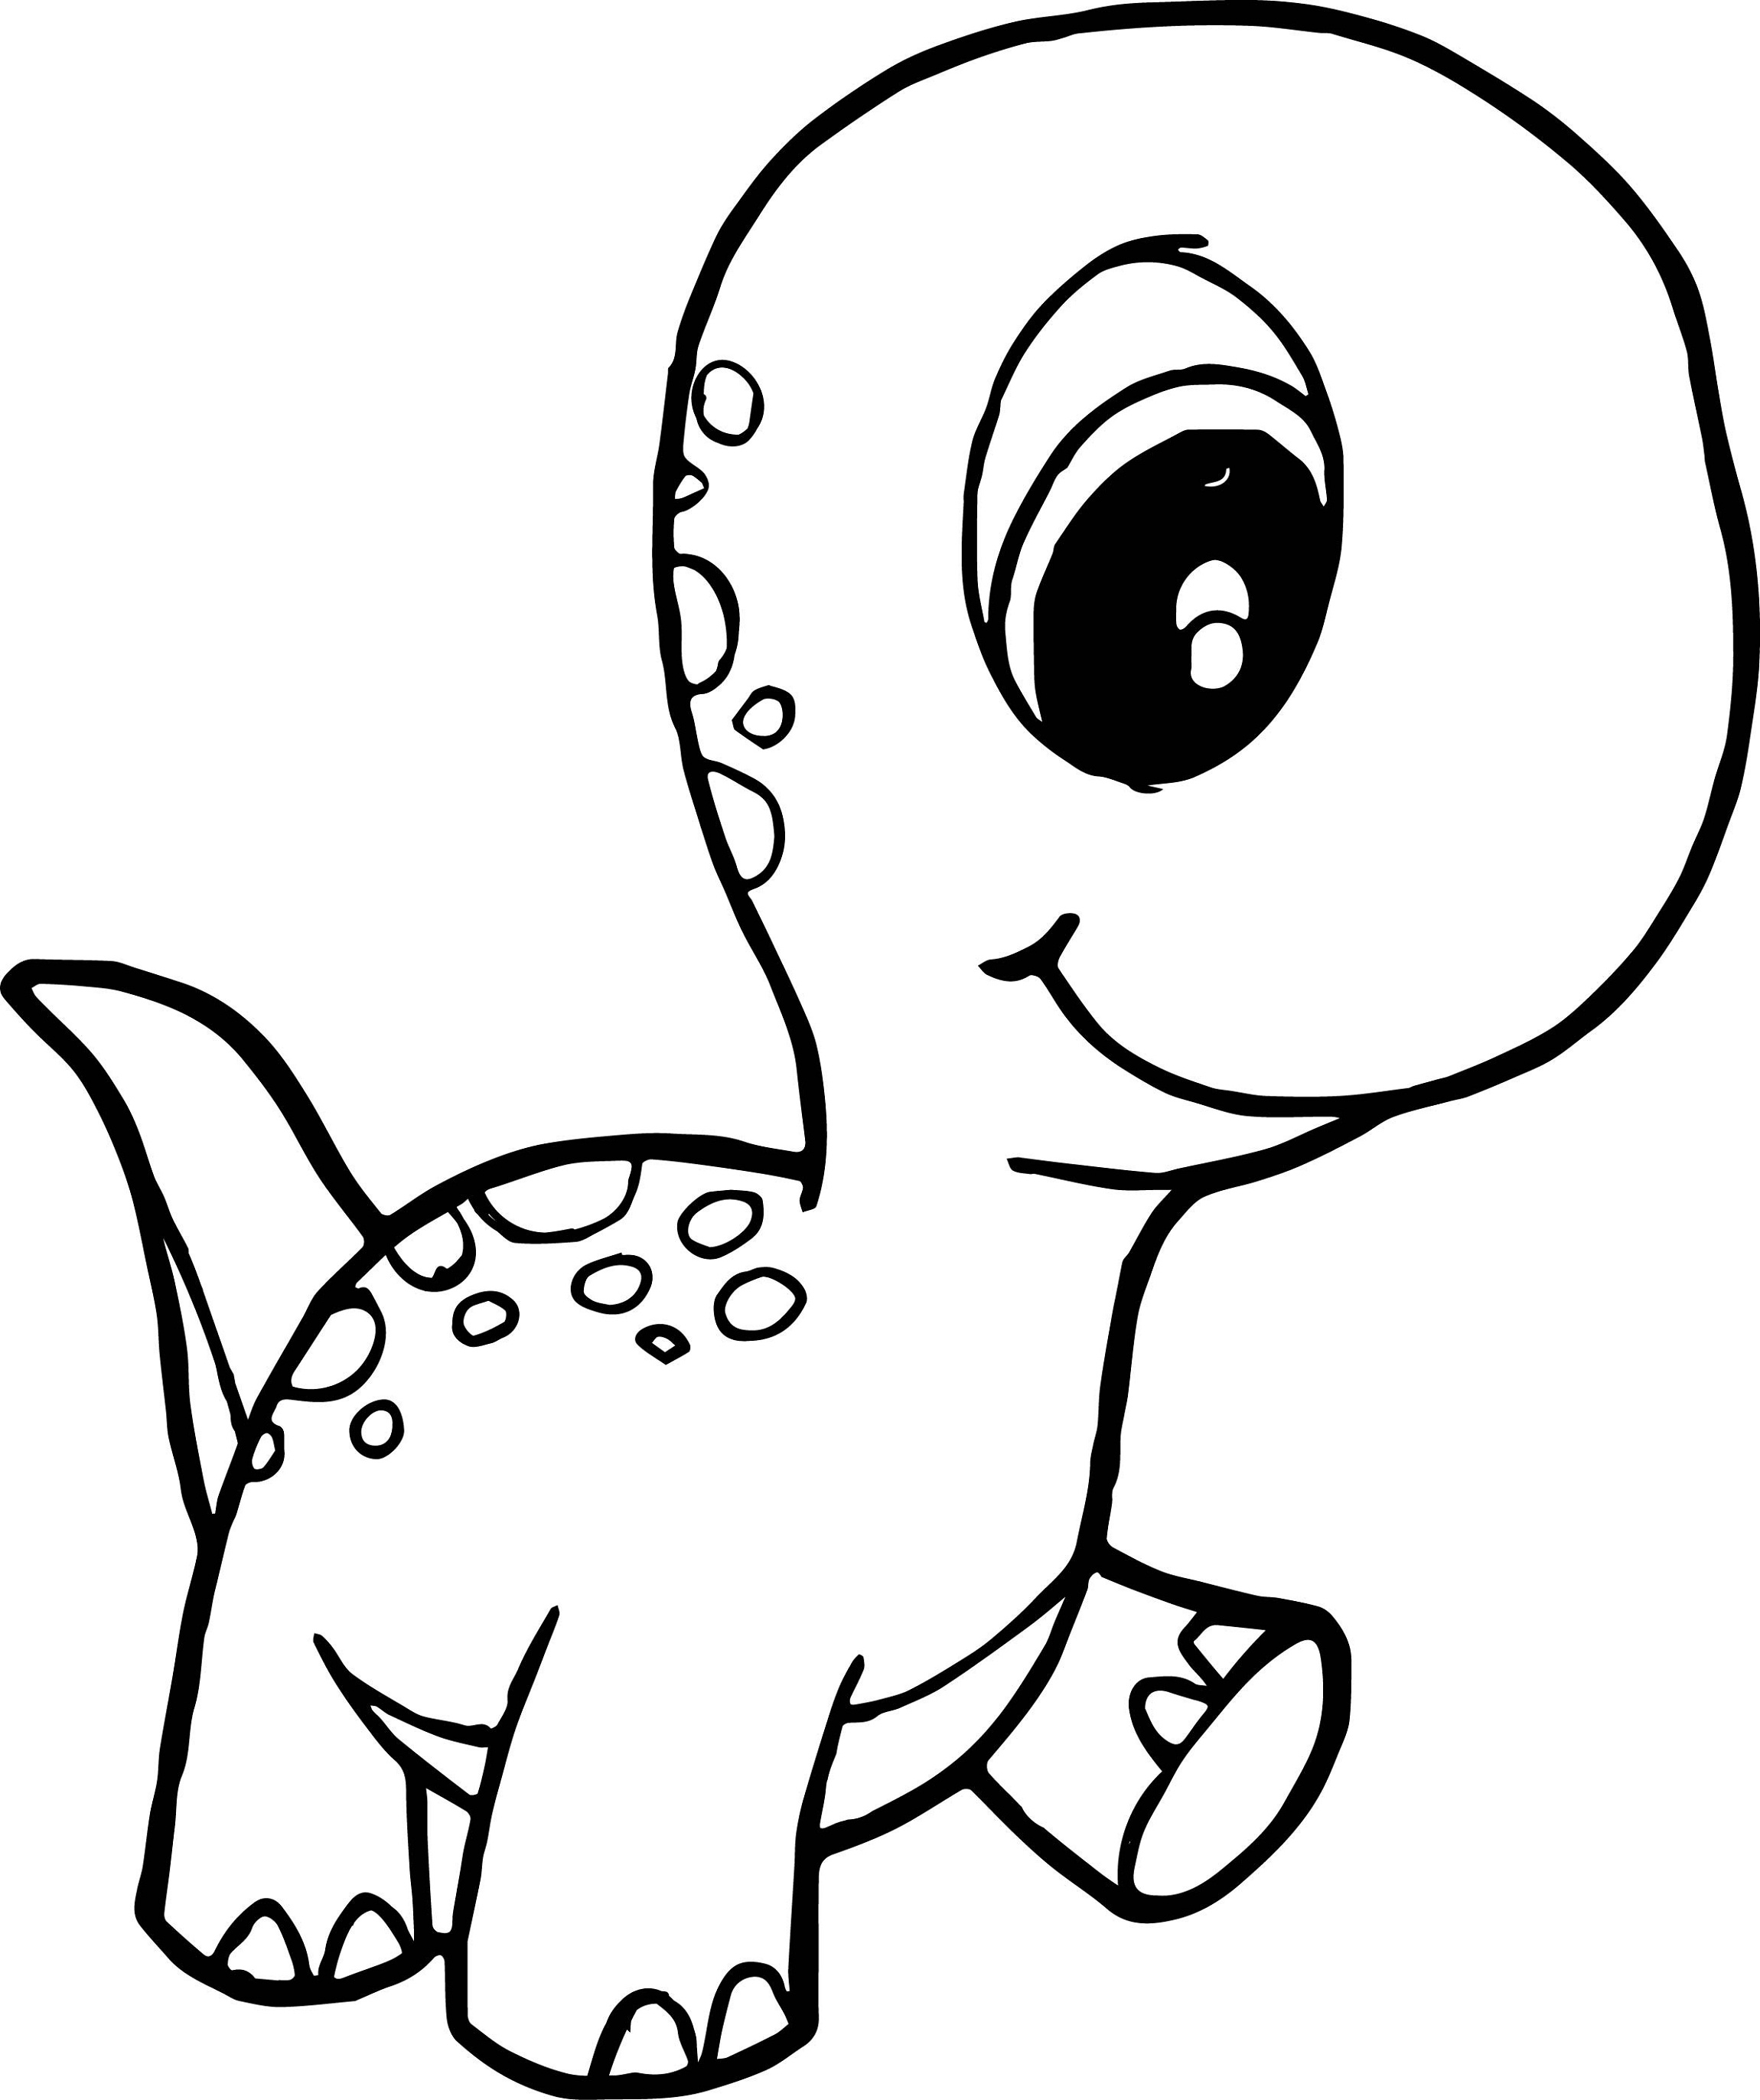 colouring dinosaur pictures 25 dinosaur coloring pages free coloring pages download dinosaur pictures colouring